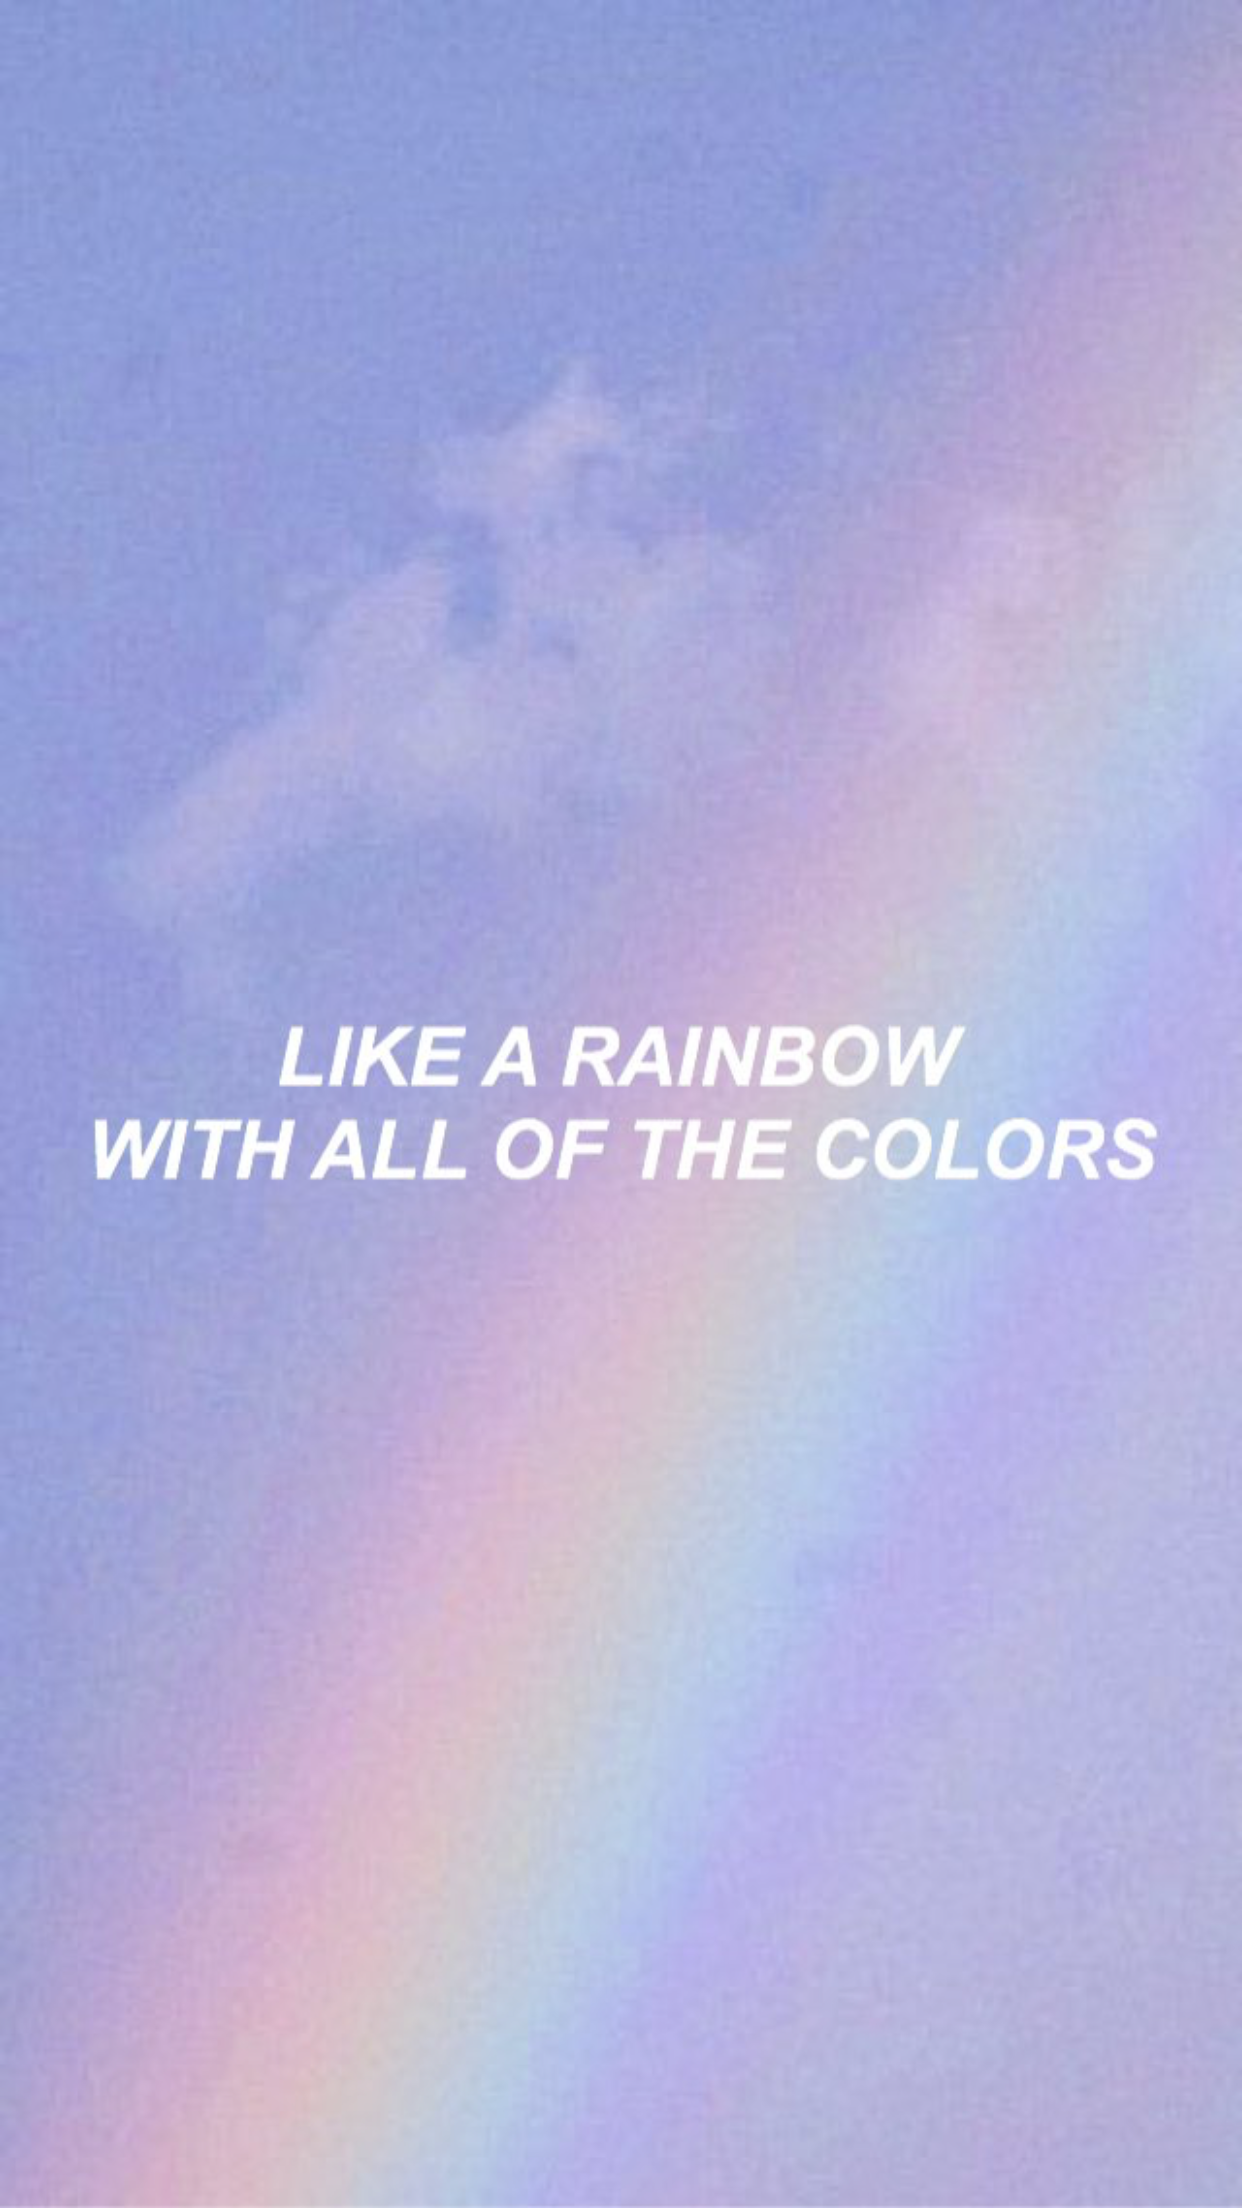 Pin By Serena Swiftie On Ts7 Lover Taylor Swift Lyrics Taylor Swift Songs Taylor Swift Quotes